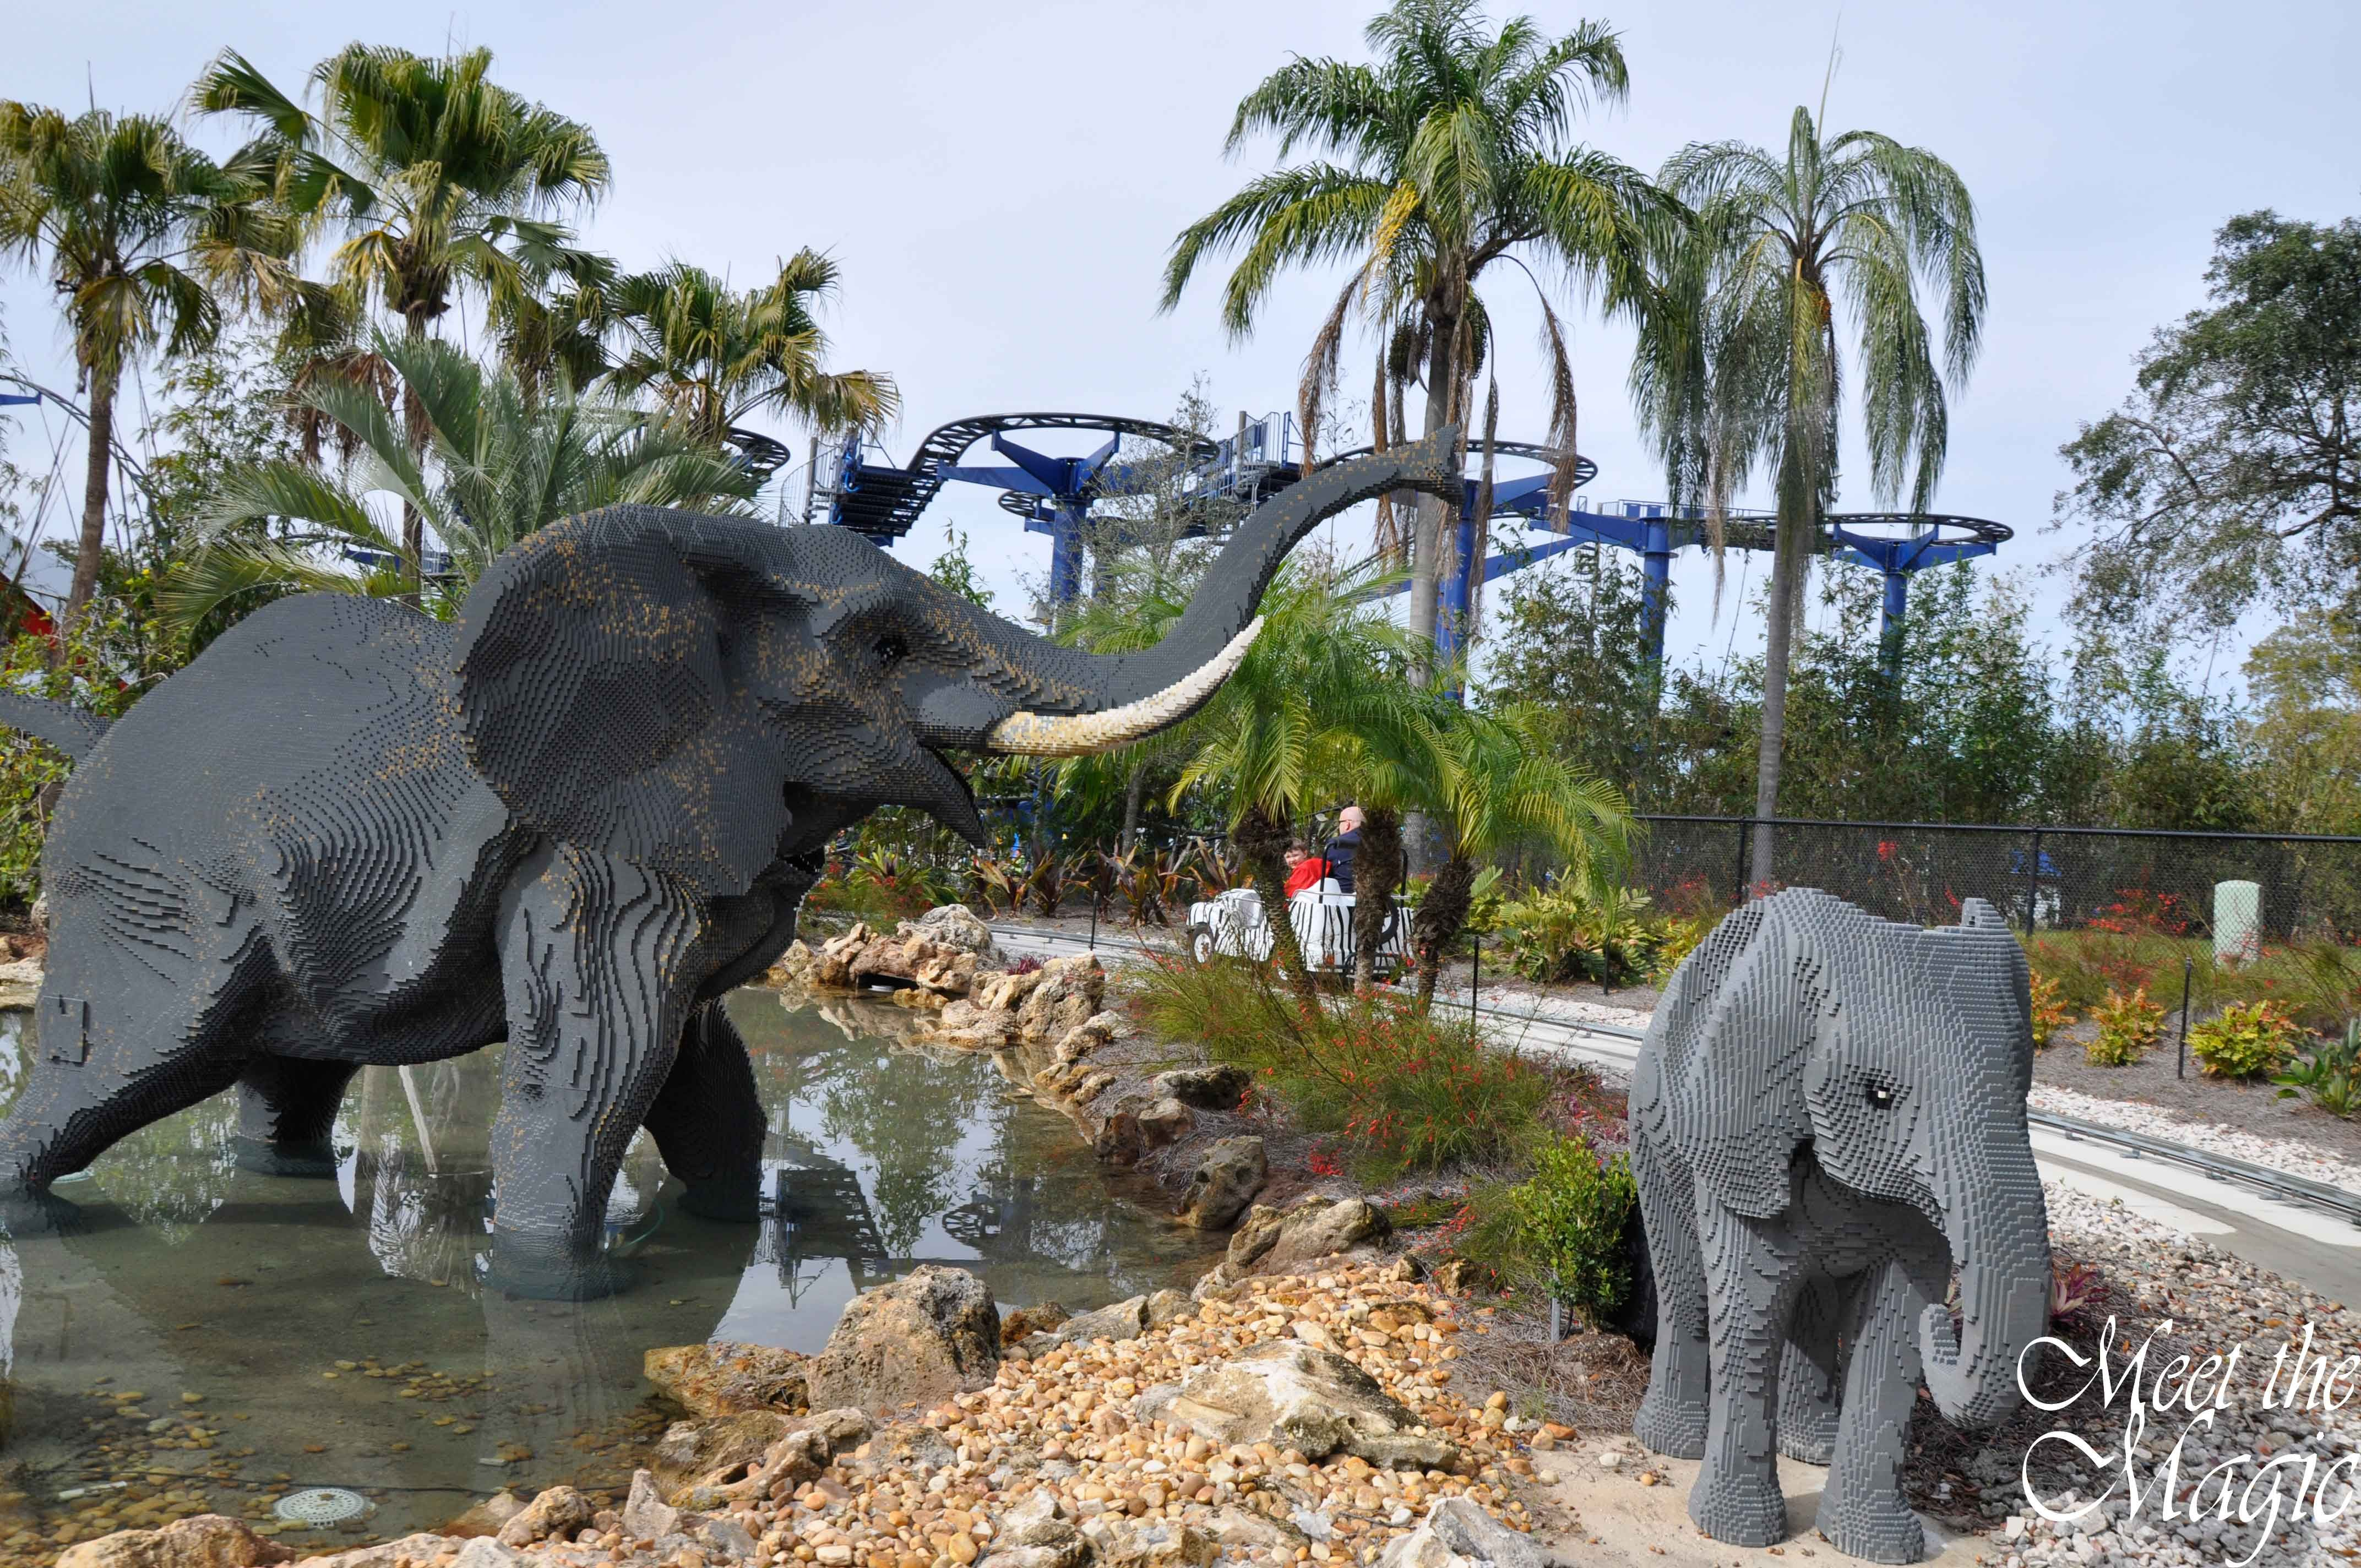 I can't believe how real the baby elephant looks. #LEGOLANDFlorida